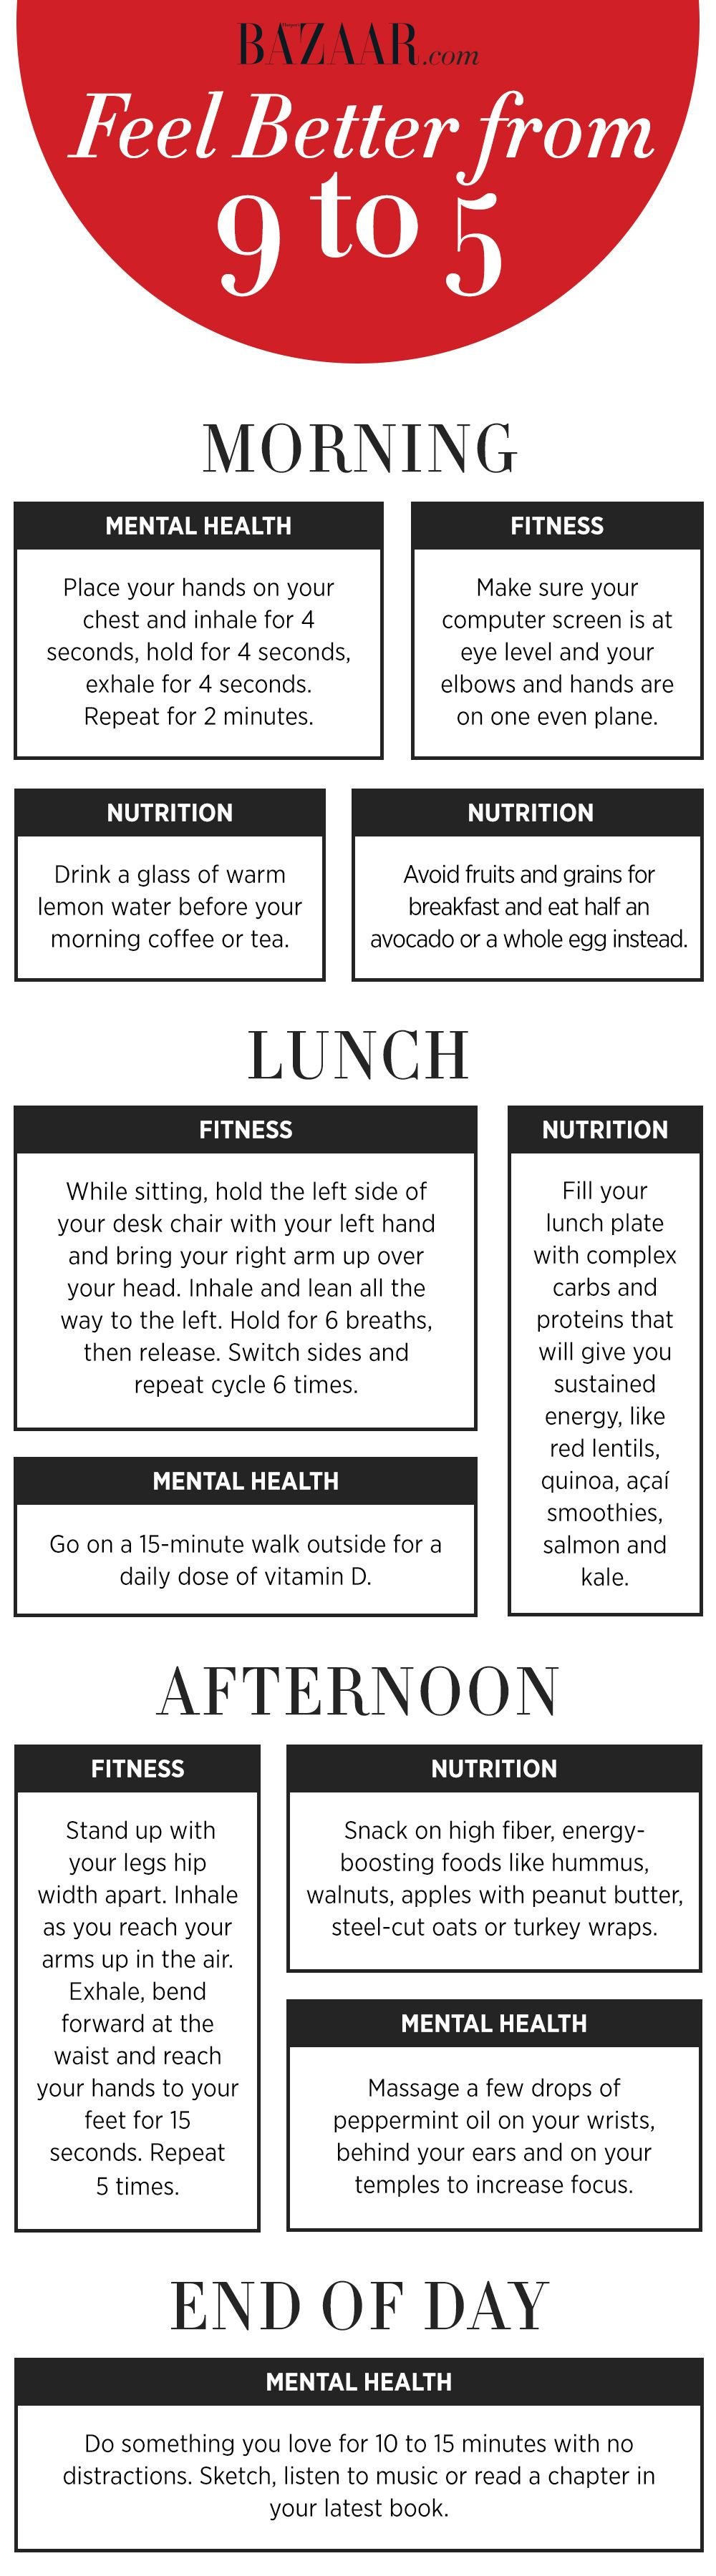 how to get more energy late in the day